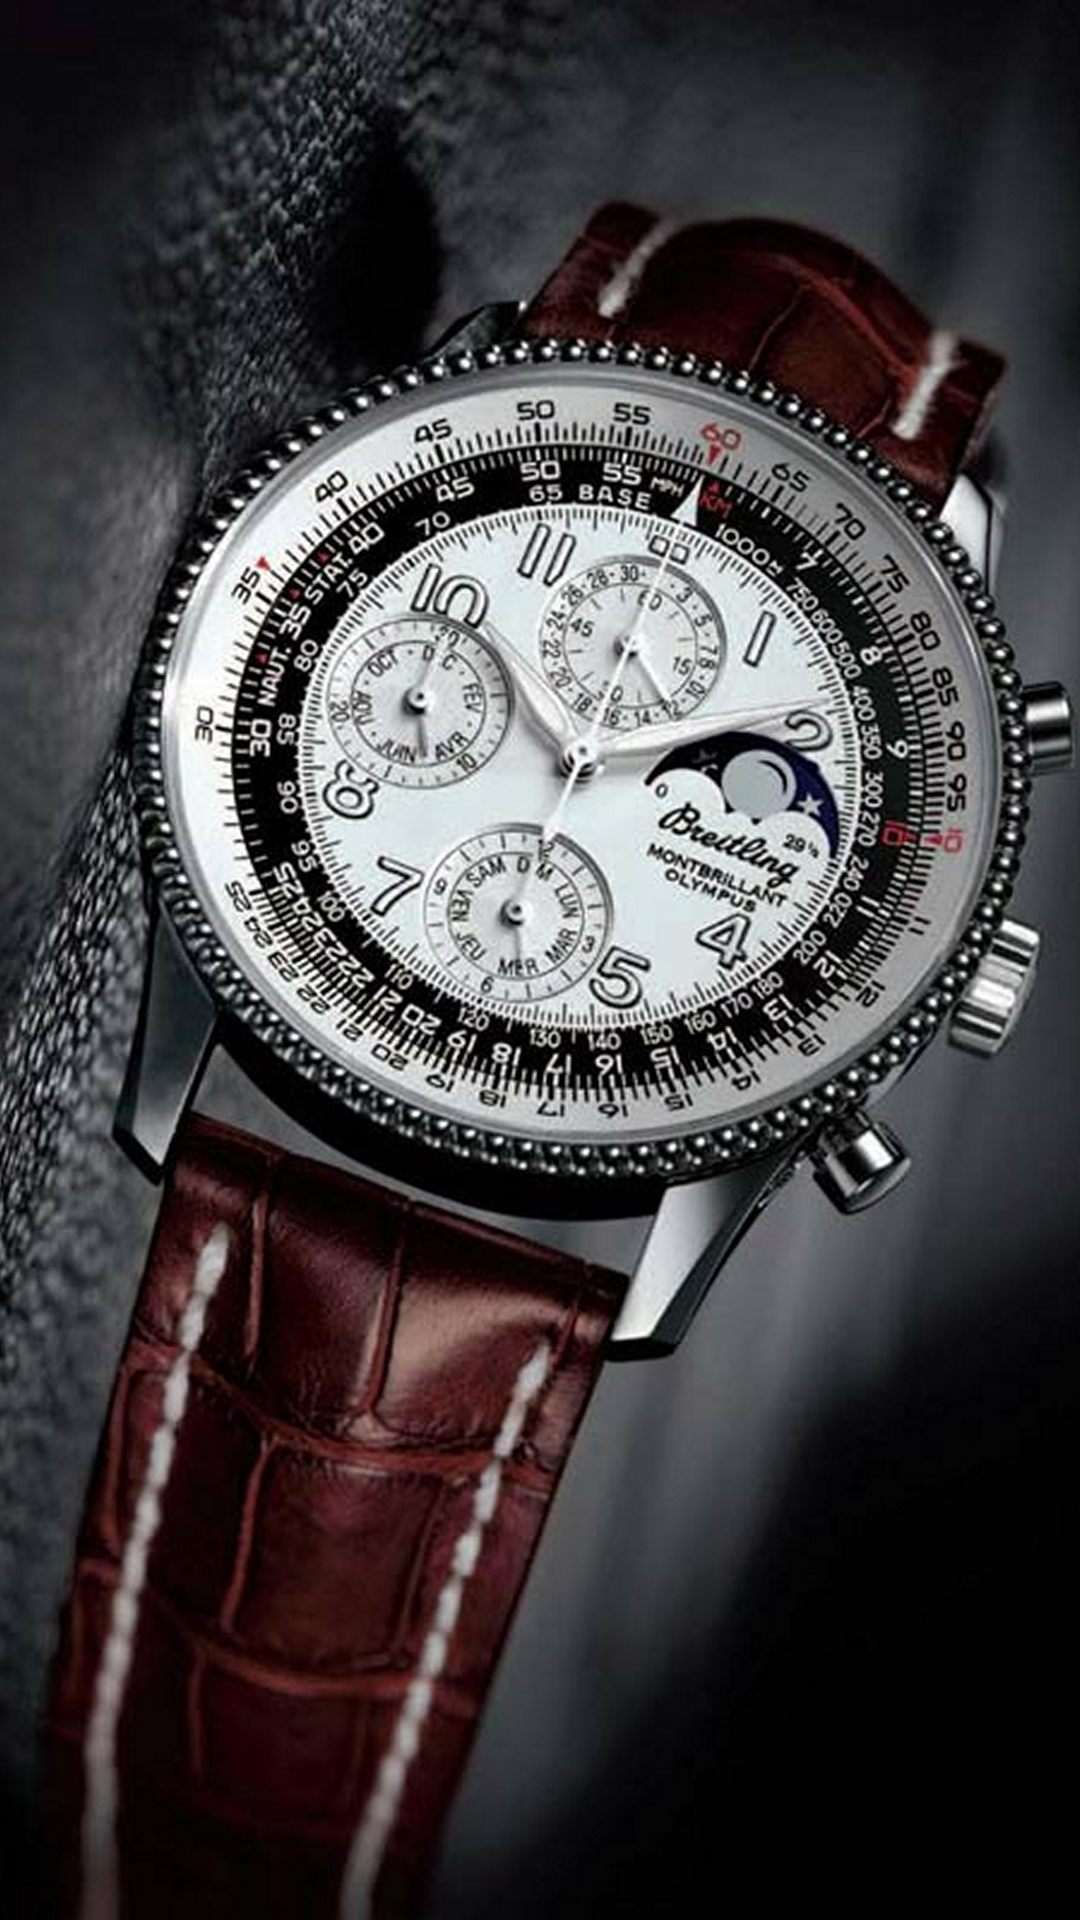 Breitling Navitimer Montbrillant Olympus, wallpapers for Samsung Galaxy S4, fondos galaxy s4, fondos de pantalla galaxy s4, sfondi samsung galaxy s4, hintergrund, 1080x1920